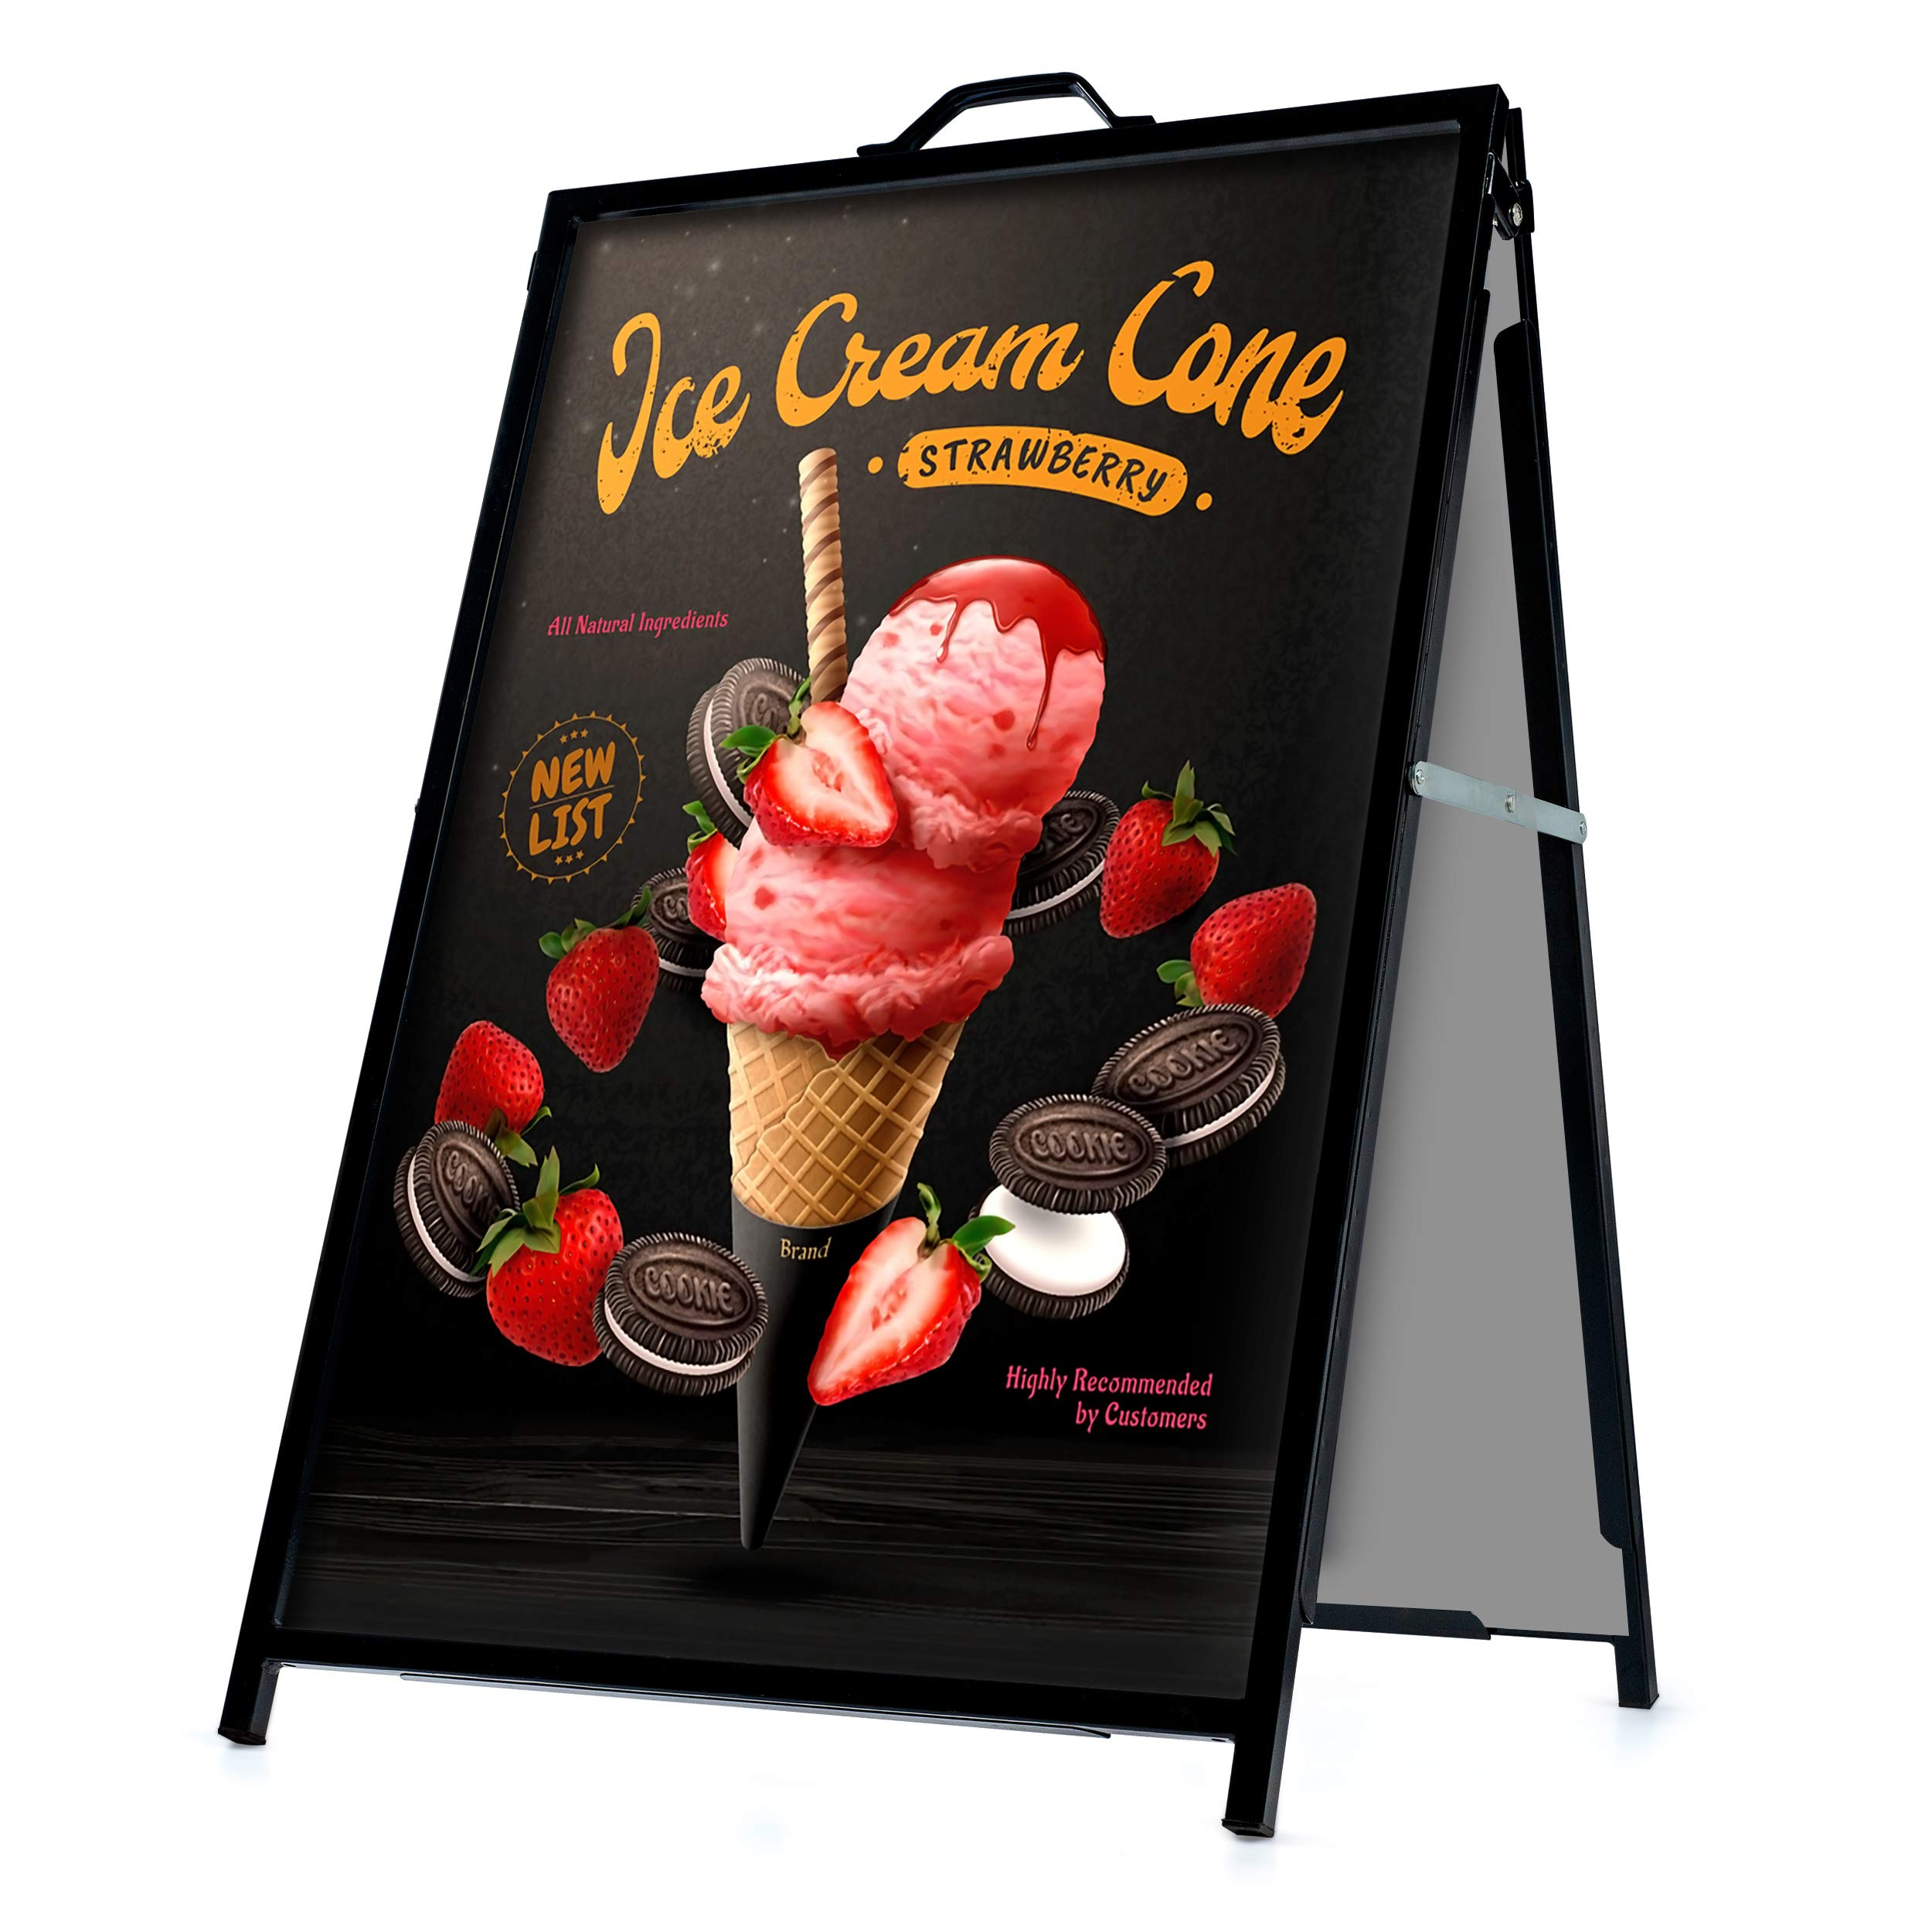 A-Frame Sidewalk Sign Board Curb Sign 24x36 inch Slide in Double Sided Display Foldable and Portable Comes with Carry Handle Weather Resistant Does Not Fall with Winds Color Black by flybold